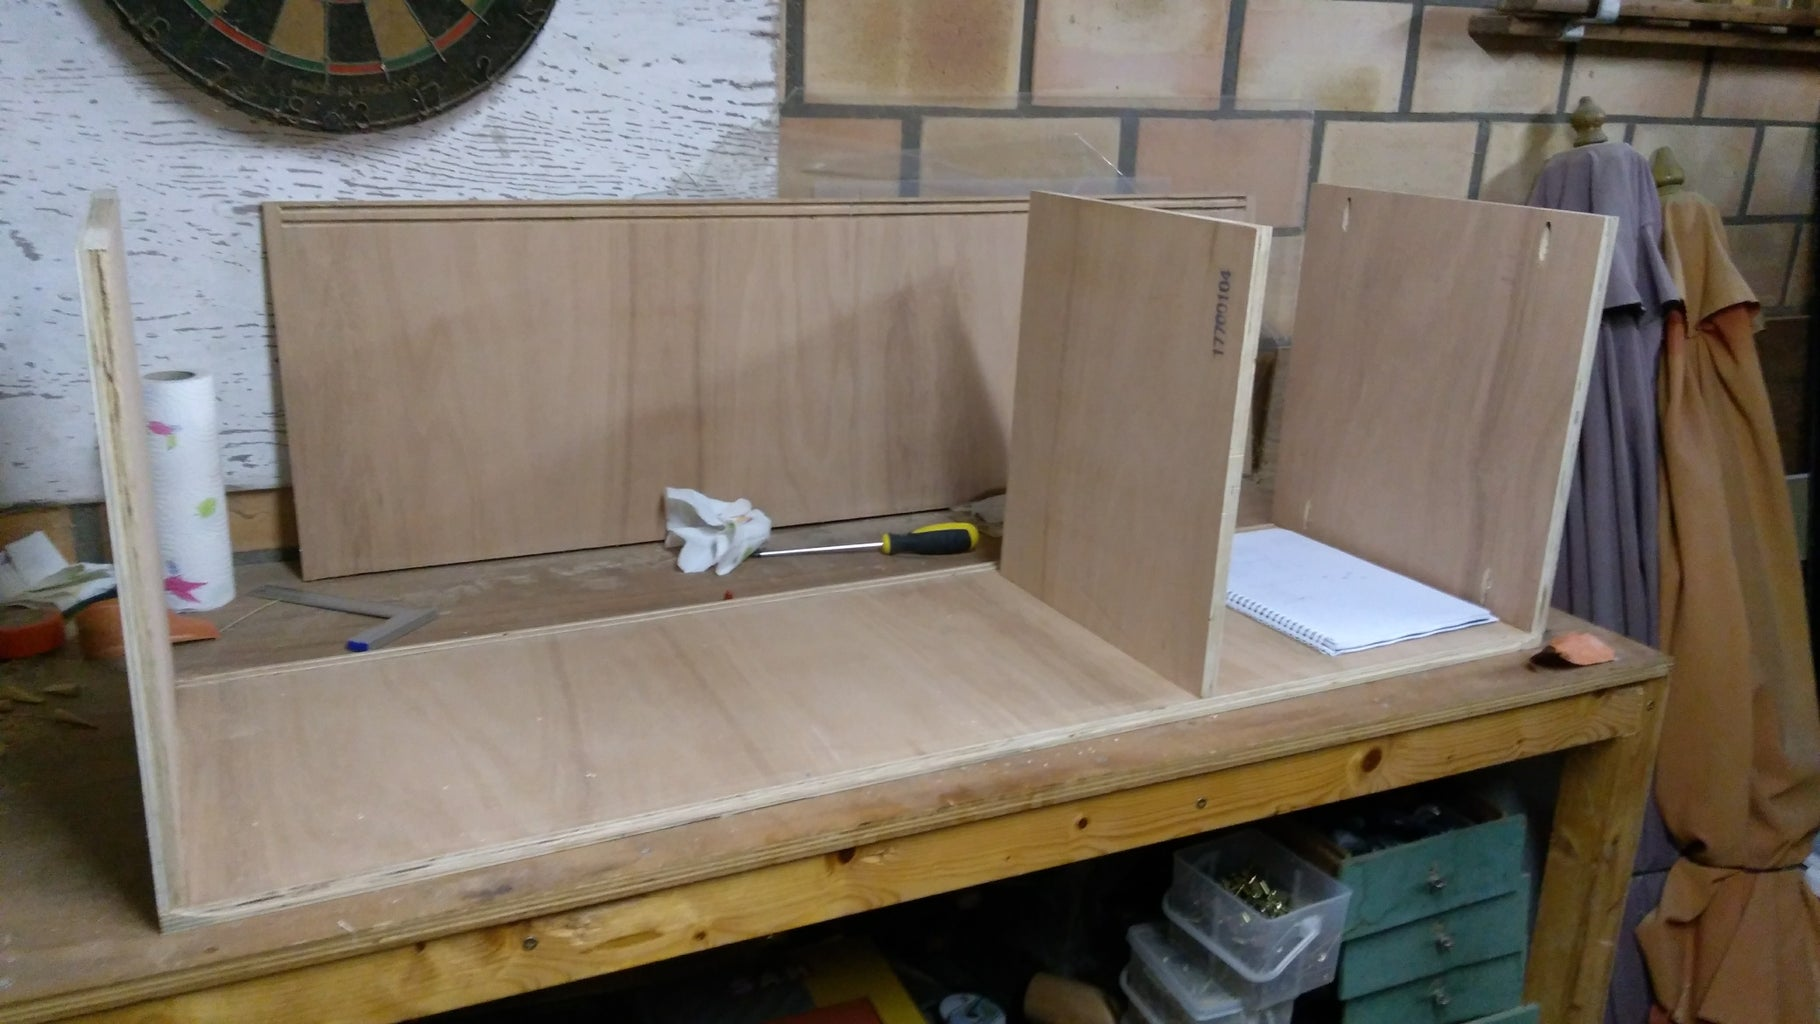 Assembling the Cabinet